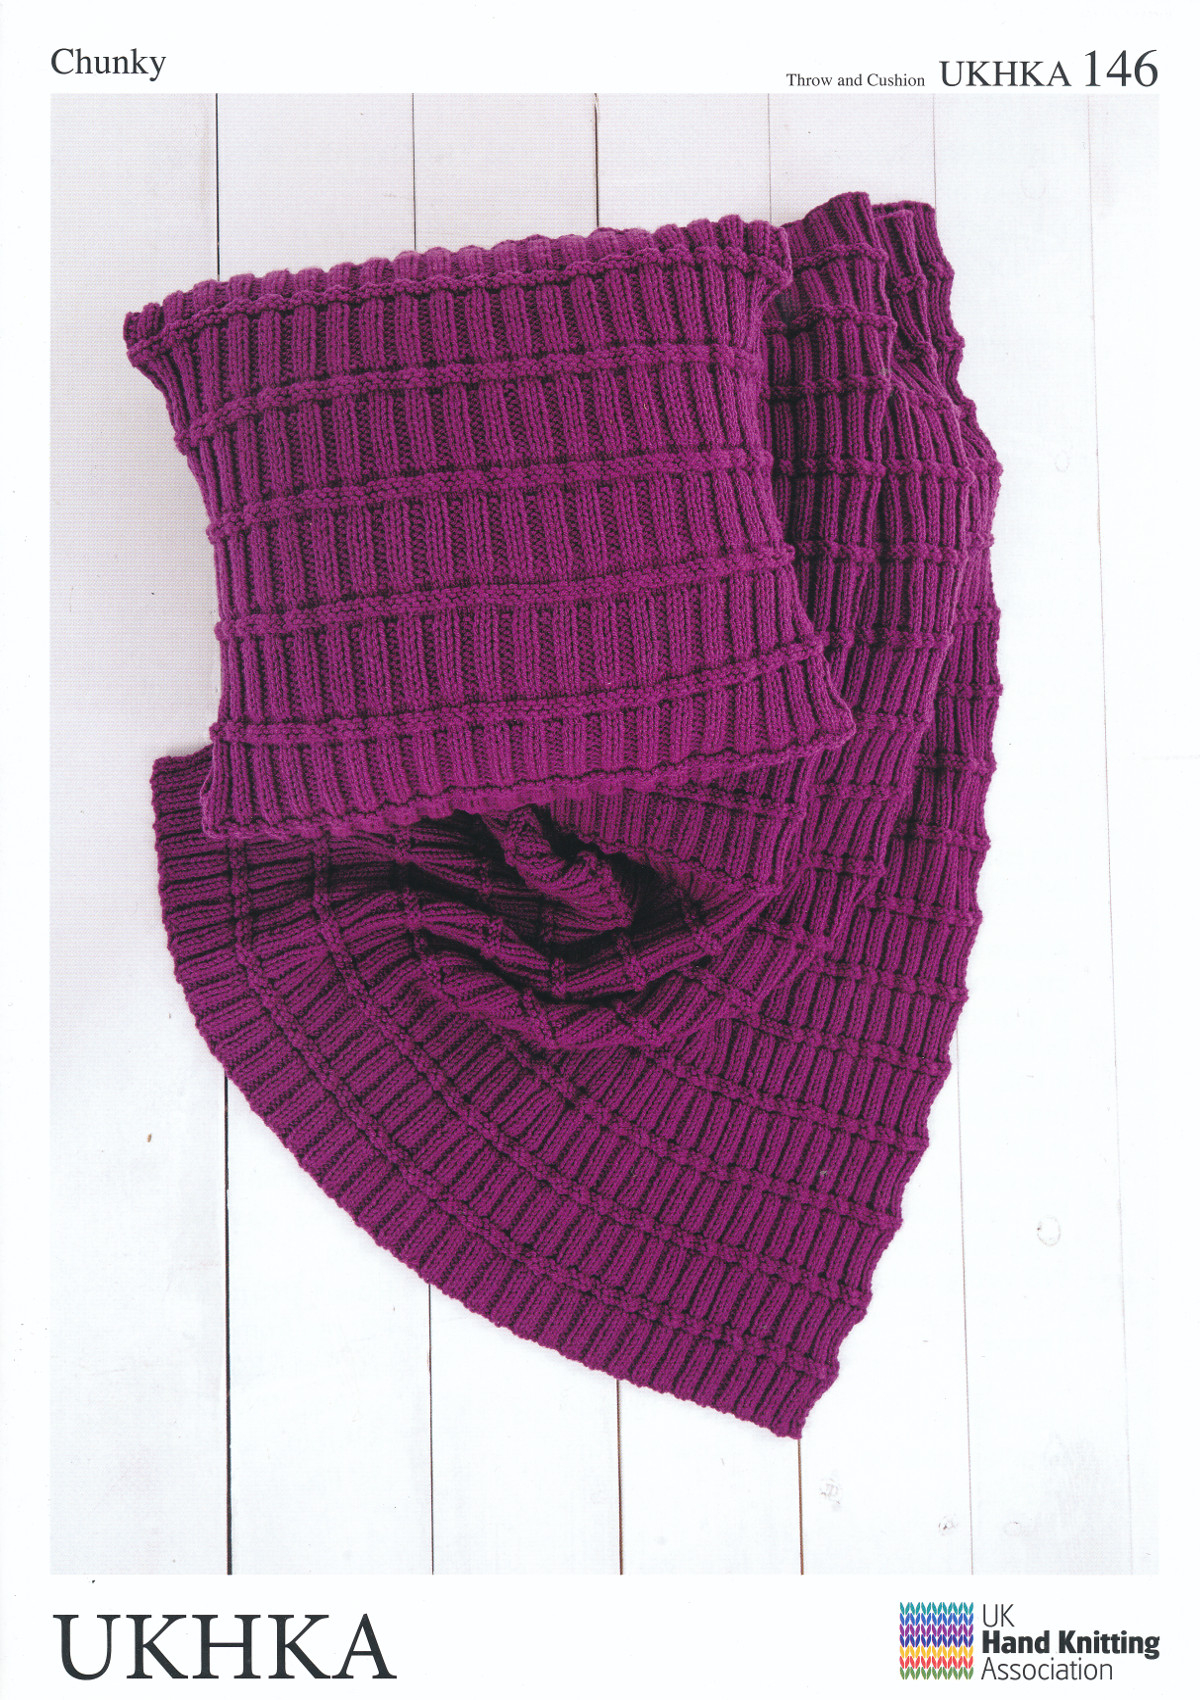 Hand Knitted Throw Patterns Details About Chunky Knitting Pattern Ukhka 146 Easy Knit Design Cushion Cover Blanket Throw